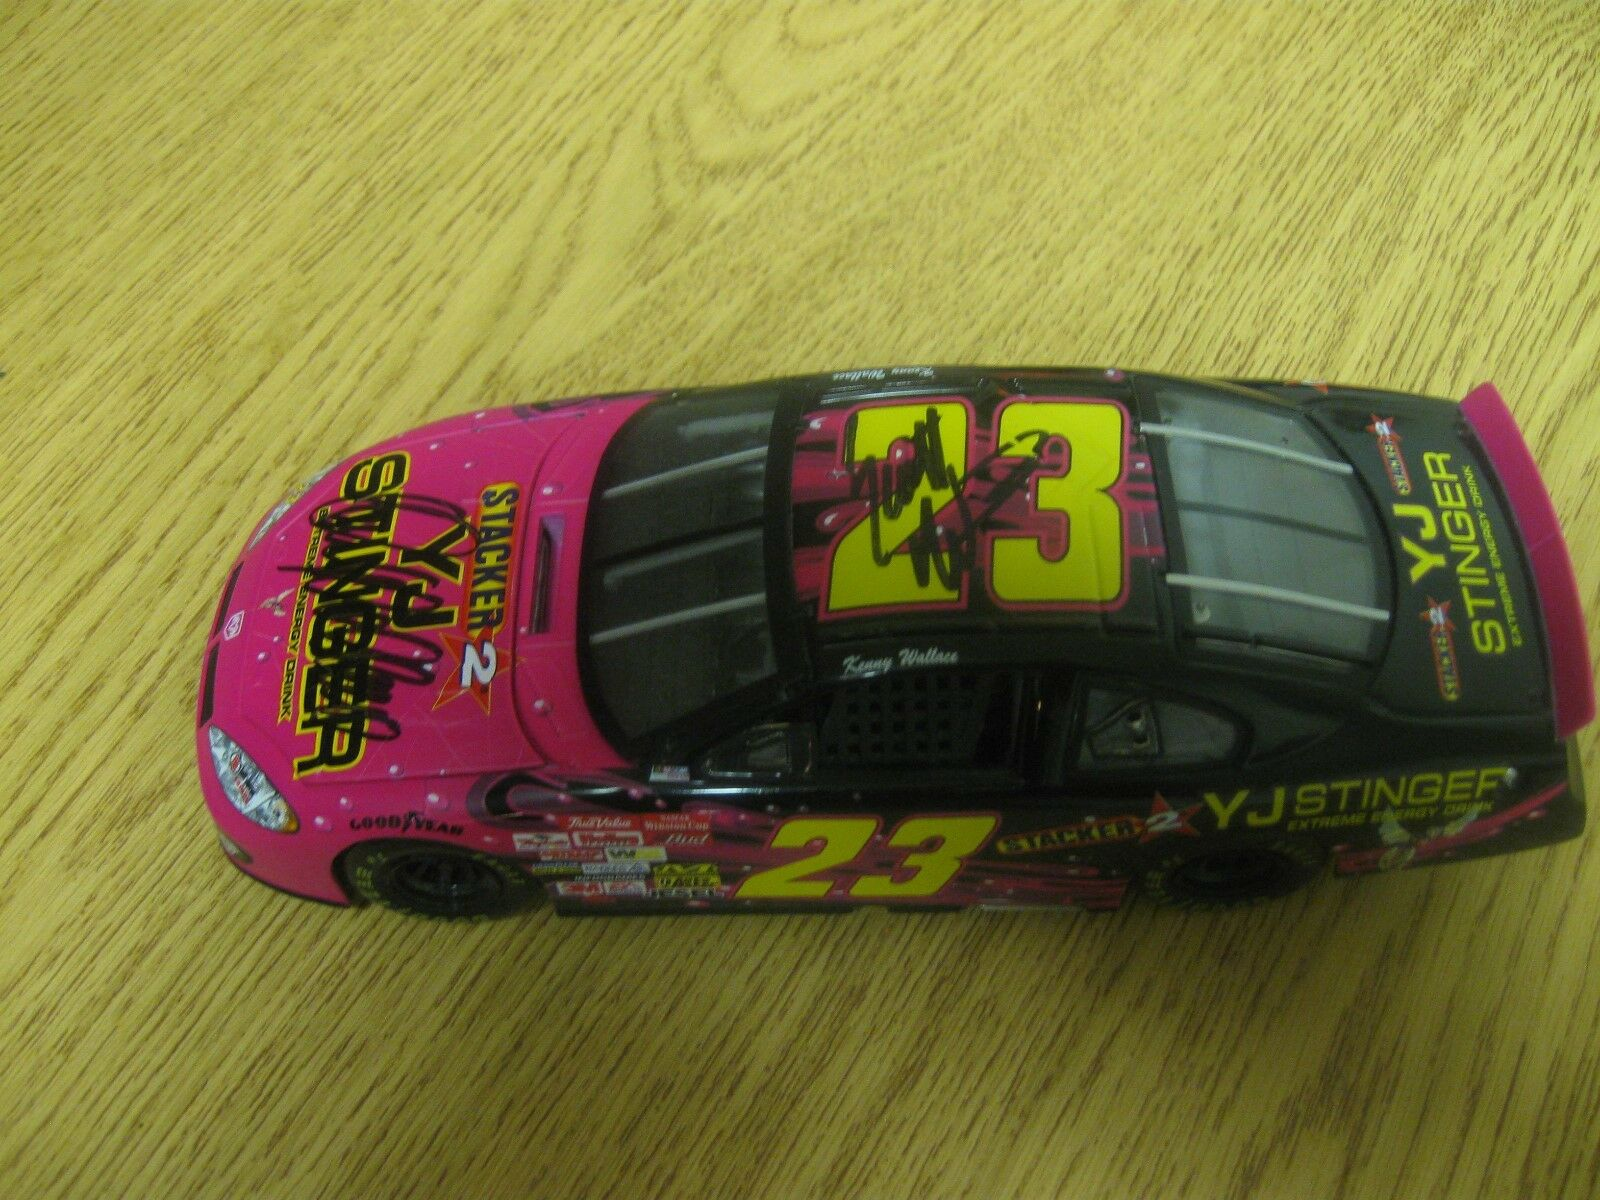 KENNY WALLACE 1 24 DIECAST  23 YJ STINGER SIGNED